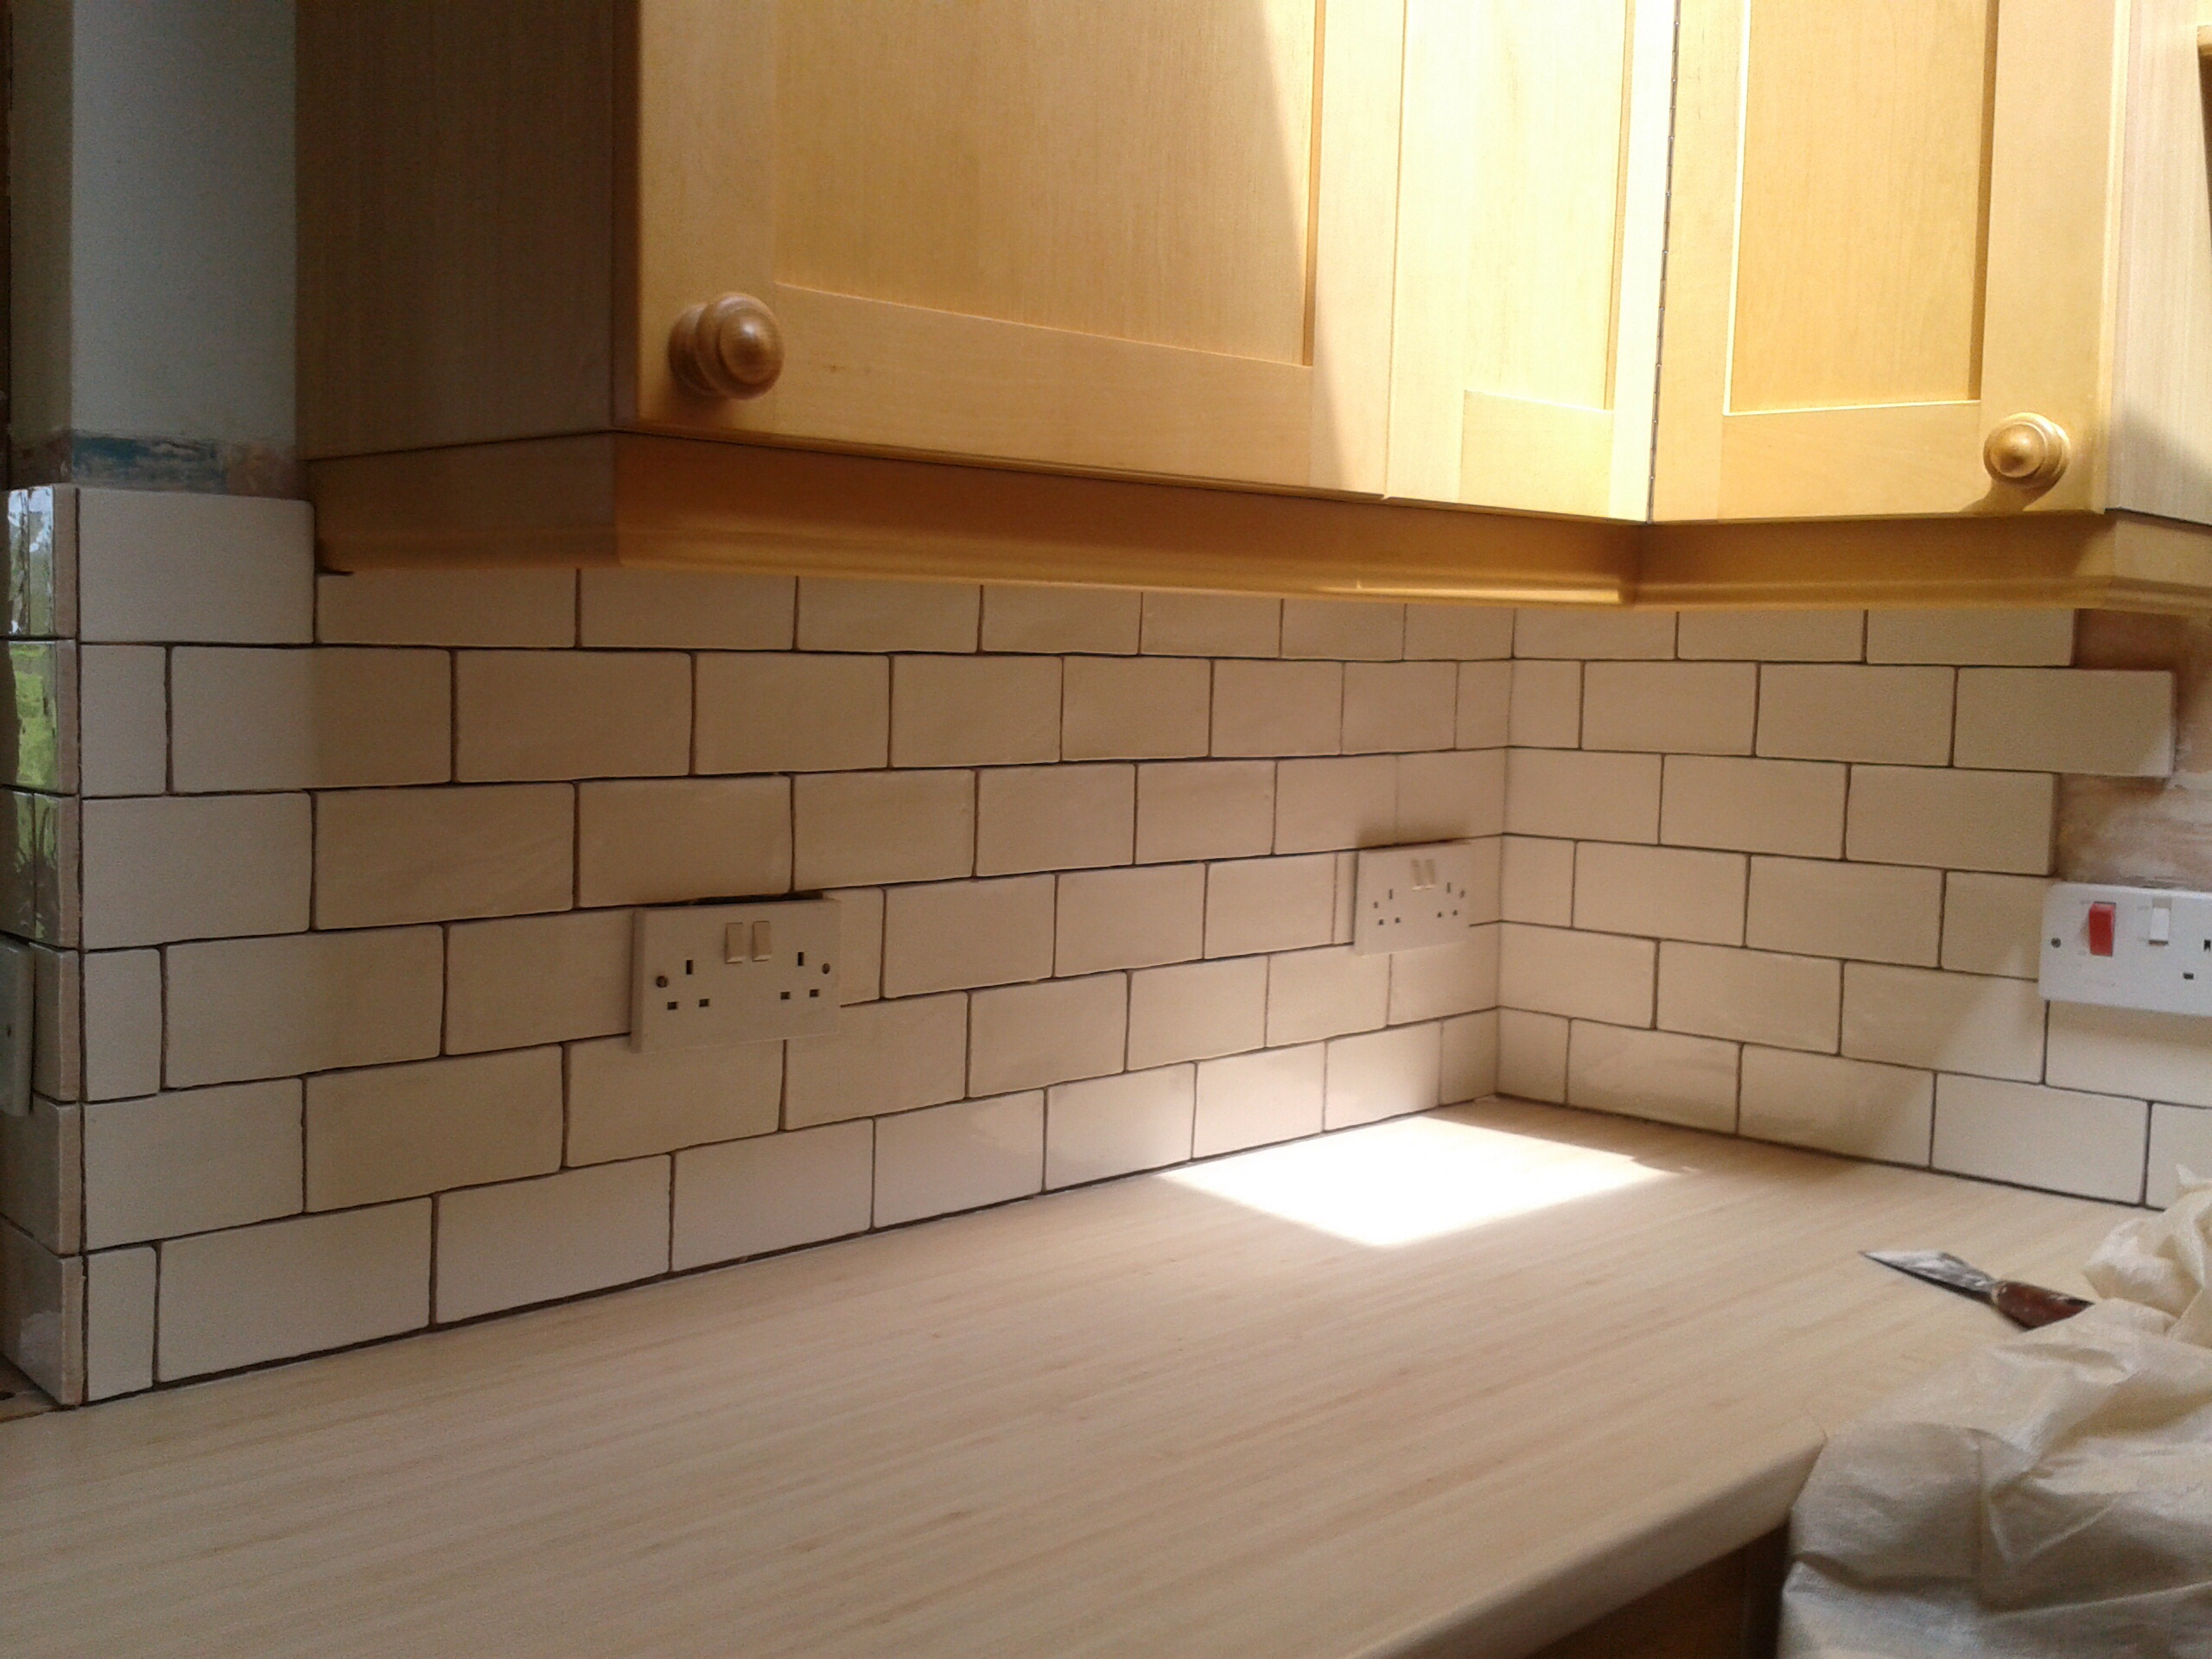 Kitchen Counter Tile Grout